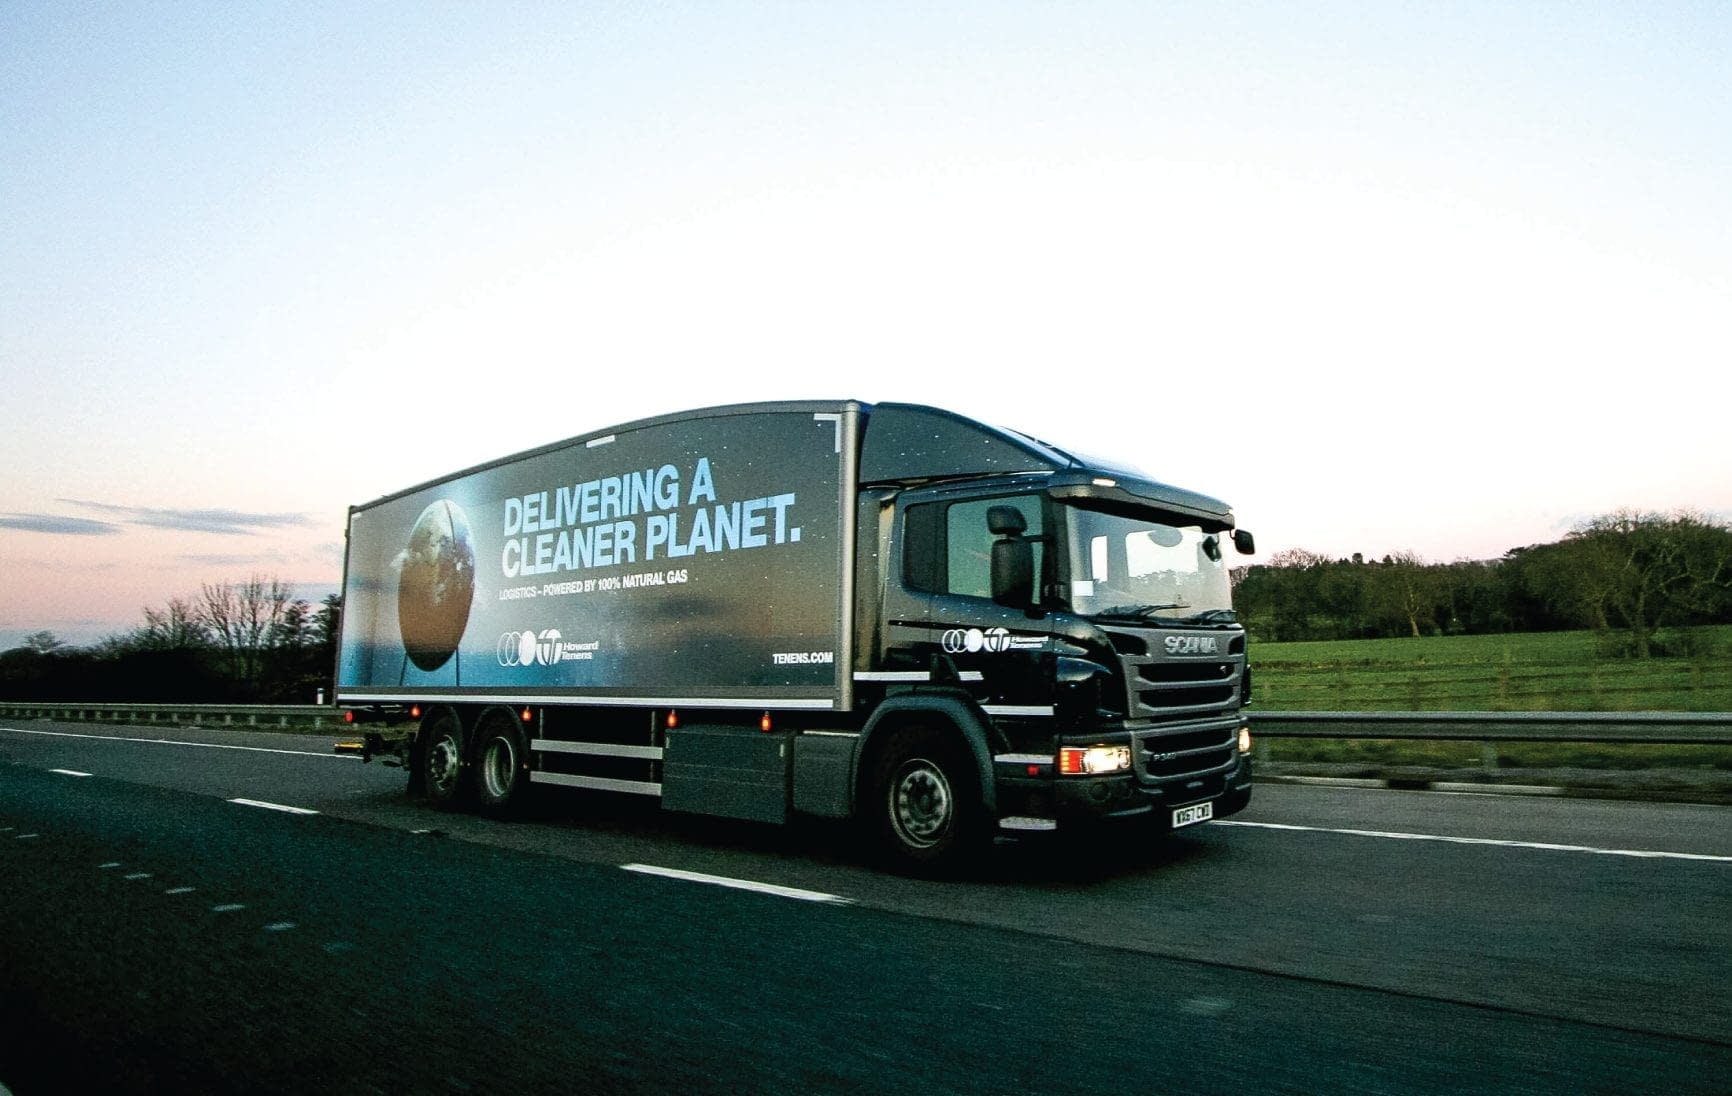 Howard Tenens Award Winning cleaner planet livery